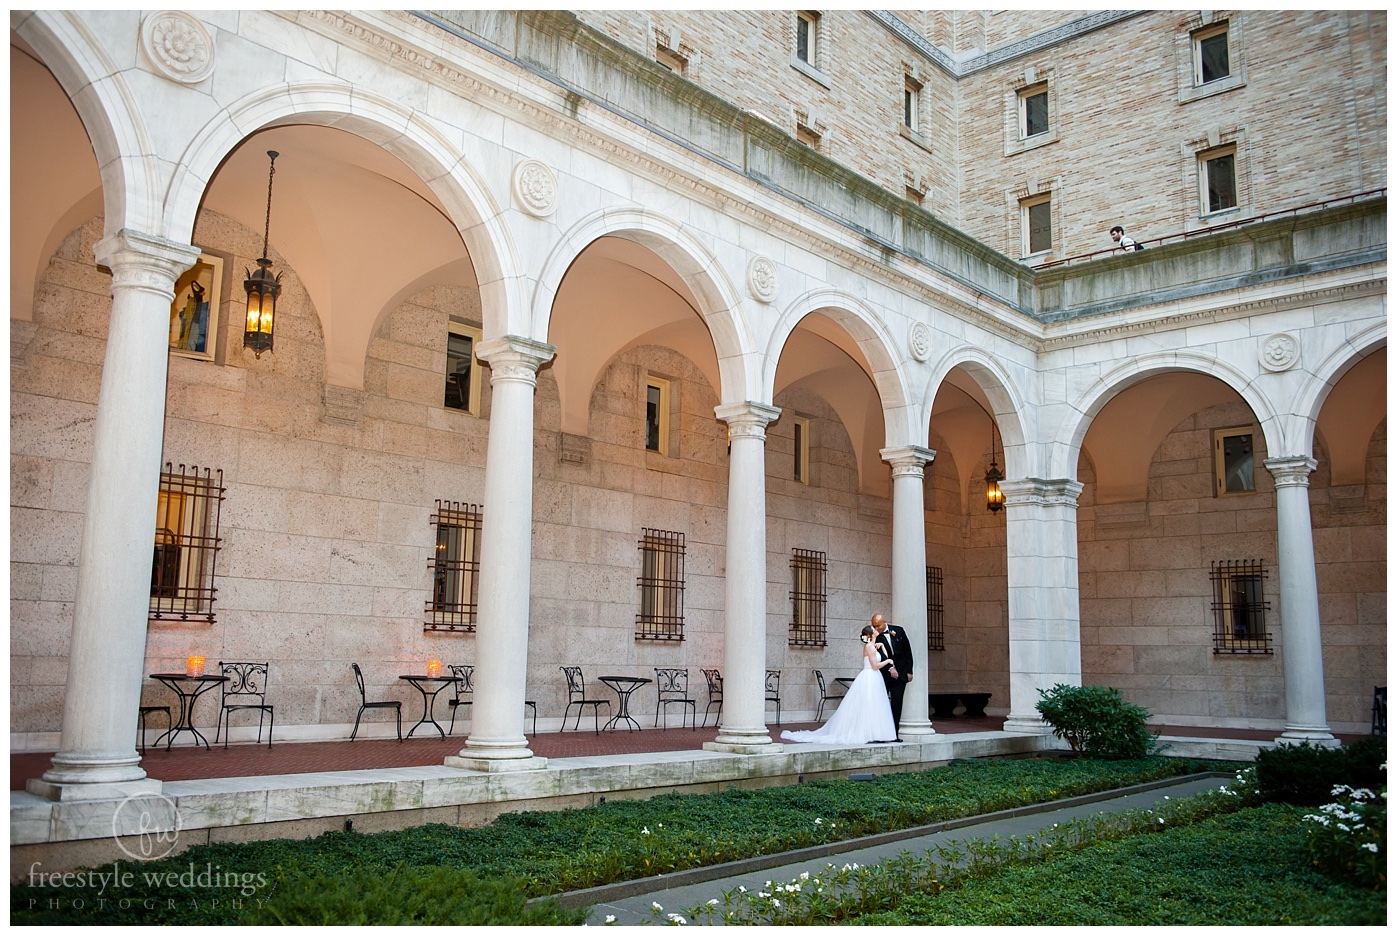 Boston Public Library Evening Wedding in September photographed by Freestyle Weddings